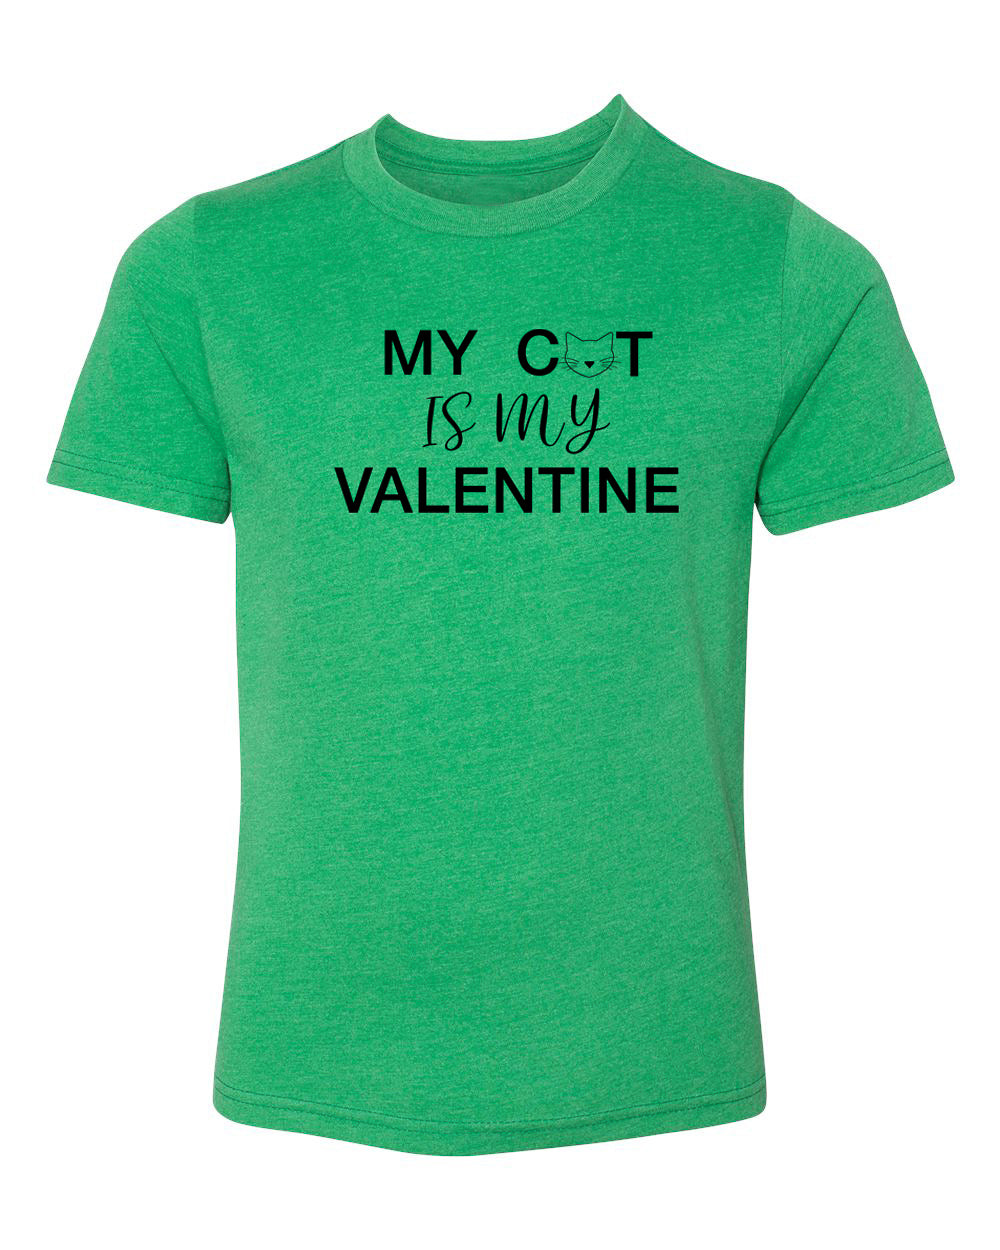 My Cat Is My Valentine Kids Shirts